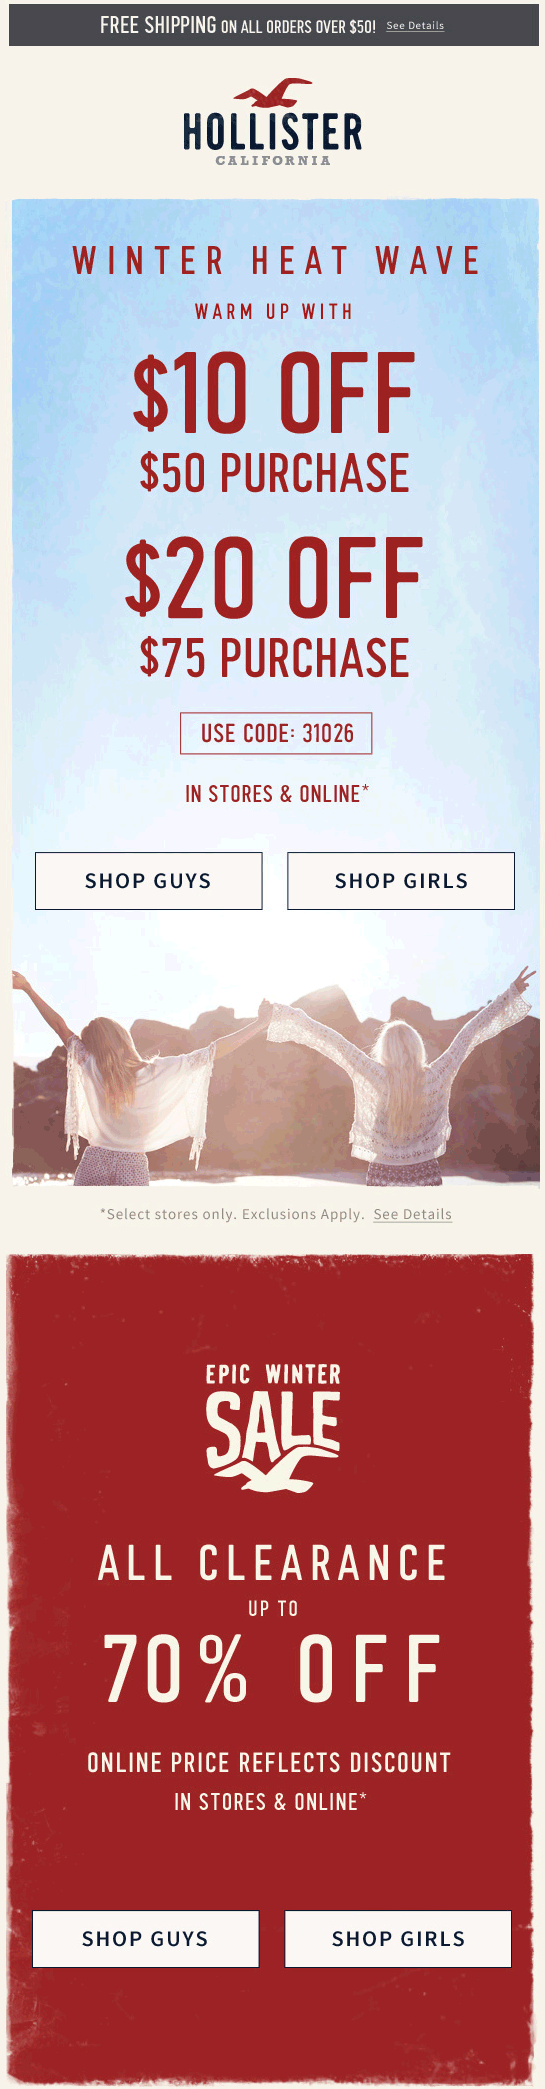 Hollister Coupon September 2017 $10 off $50 & more at Hollister, or online via promo code 31026